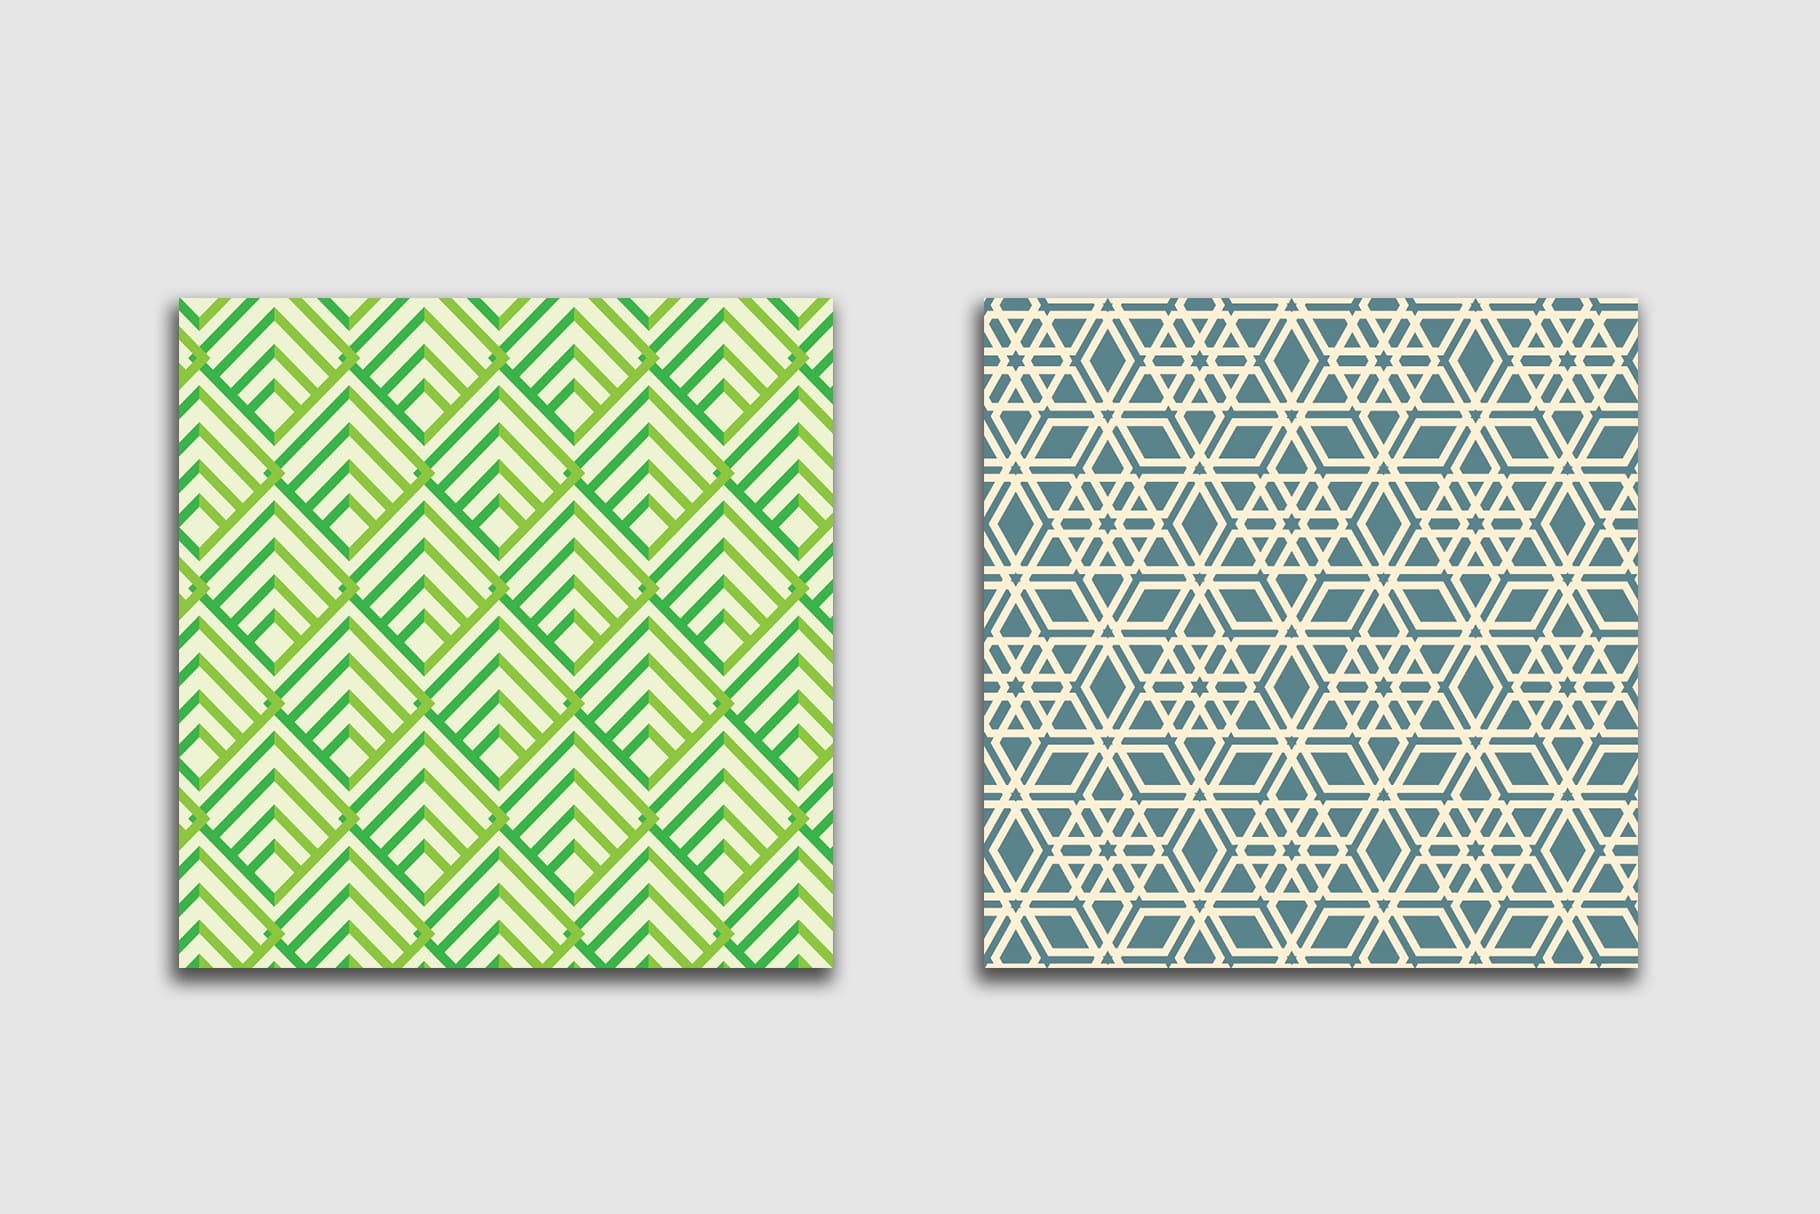 Delicate tiles in herringbone geometry. Presented 2 pieces in two shades of green.